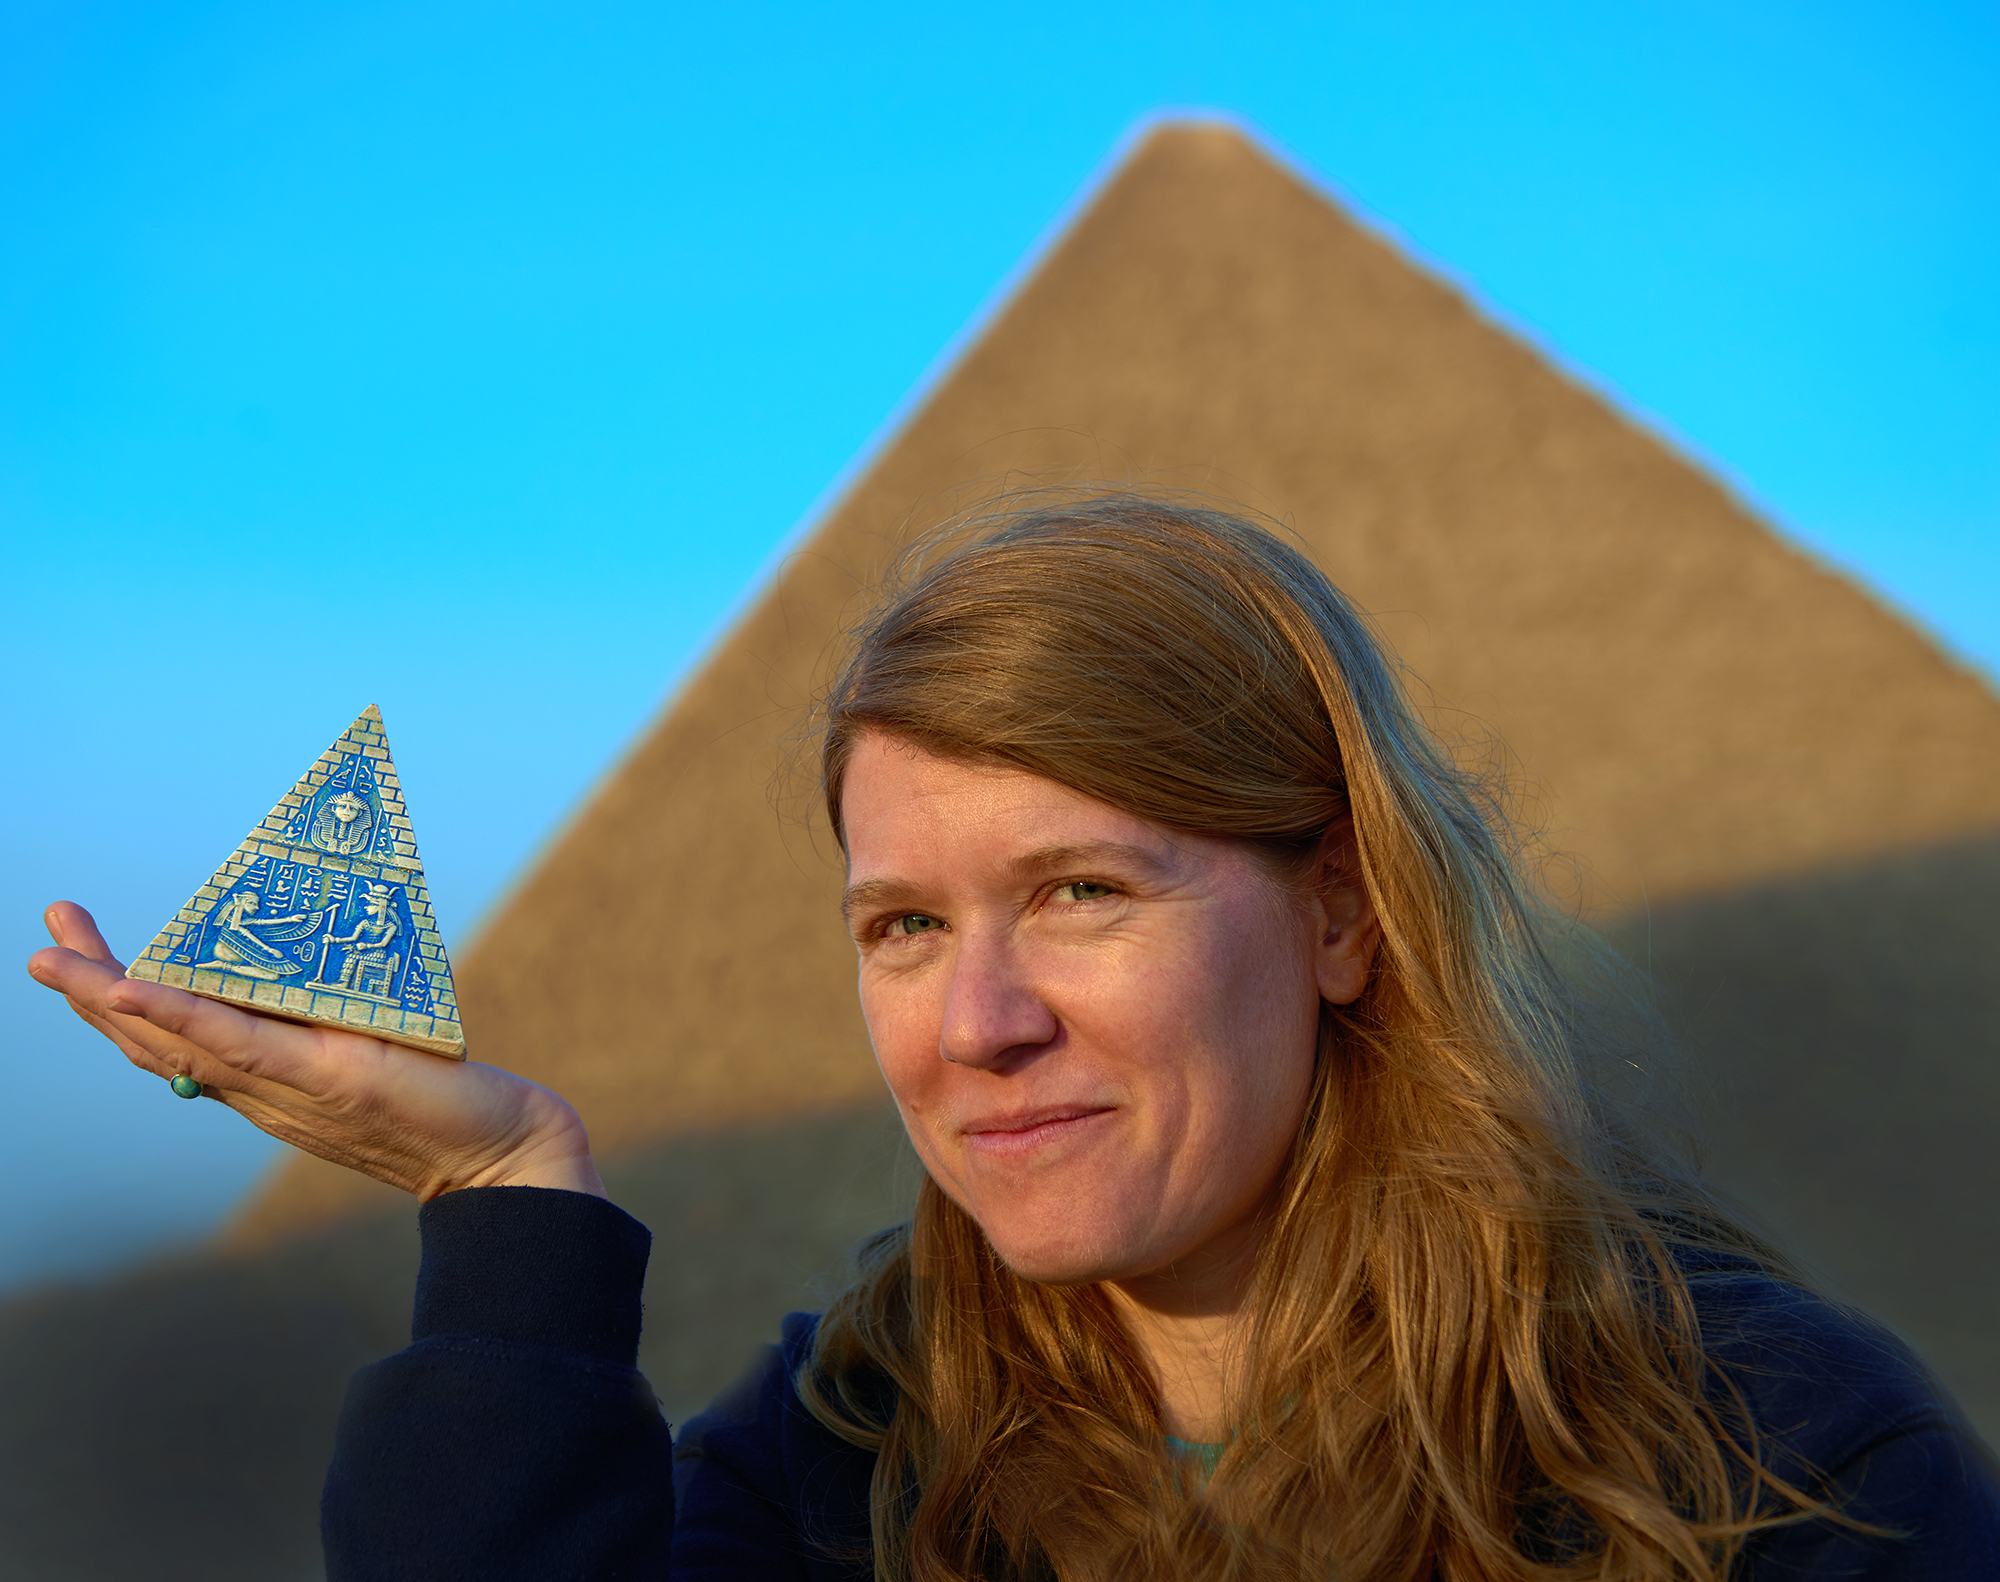 Photo of Sarah Parcak holding a pyramid in her hand with an ancient pyramid behind her.